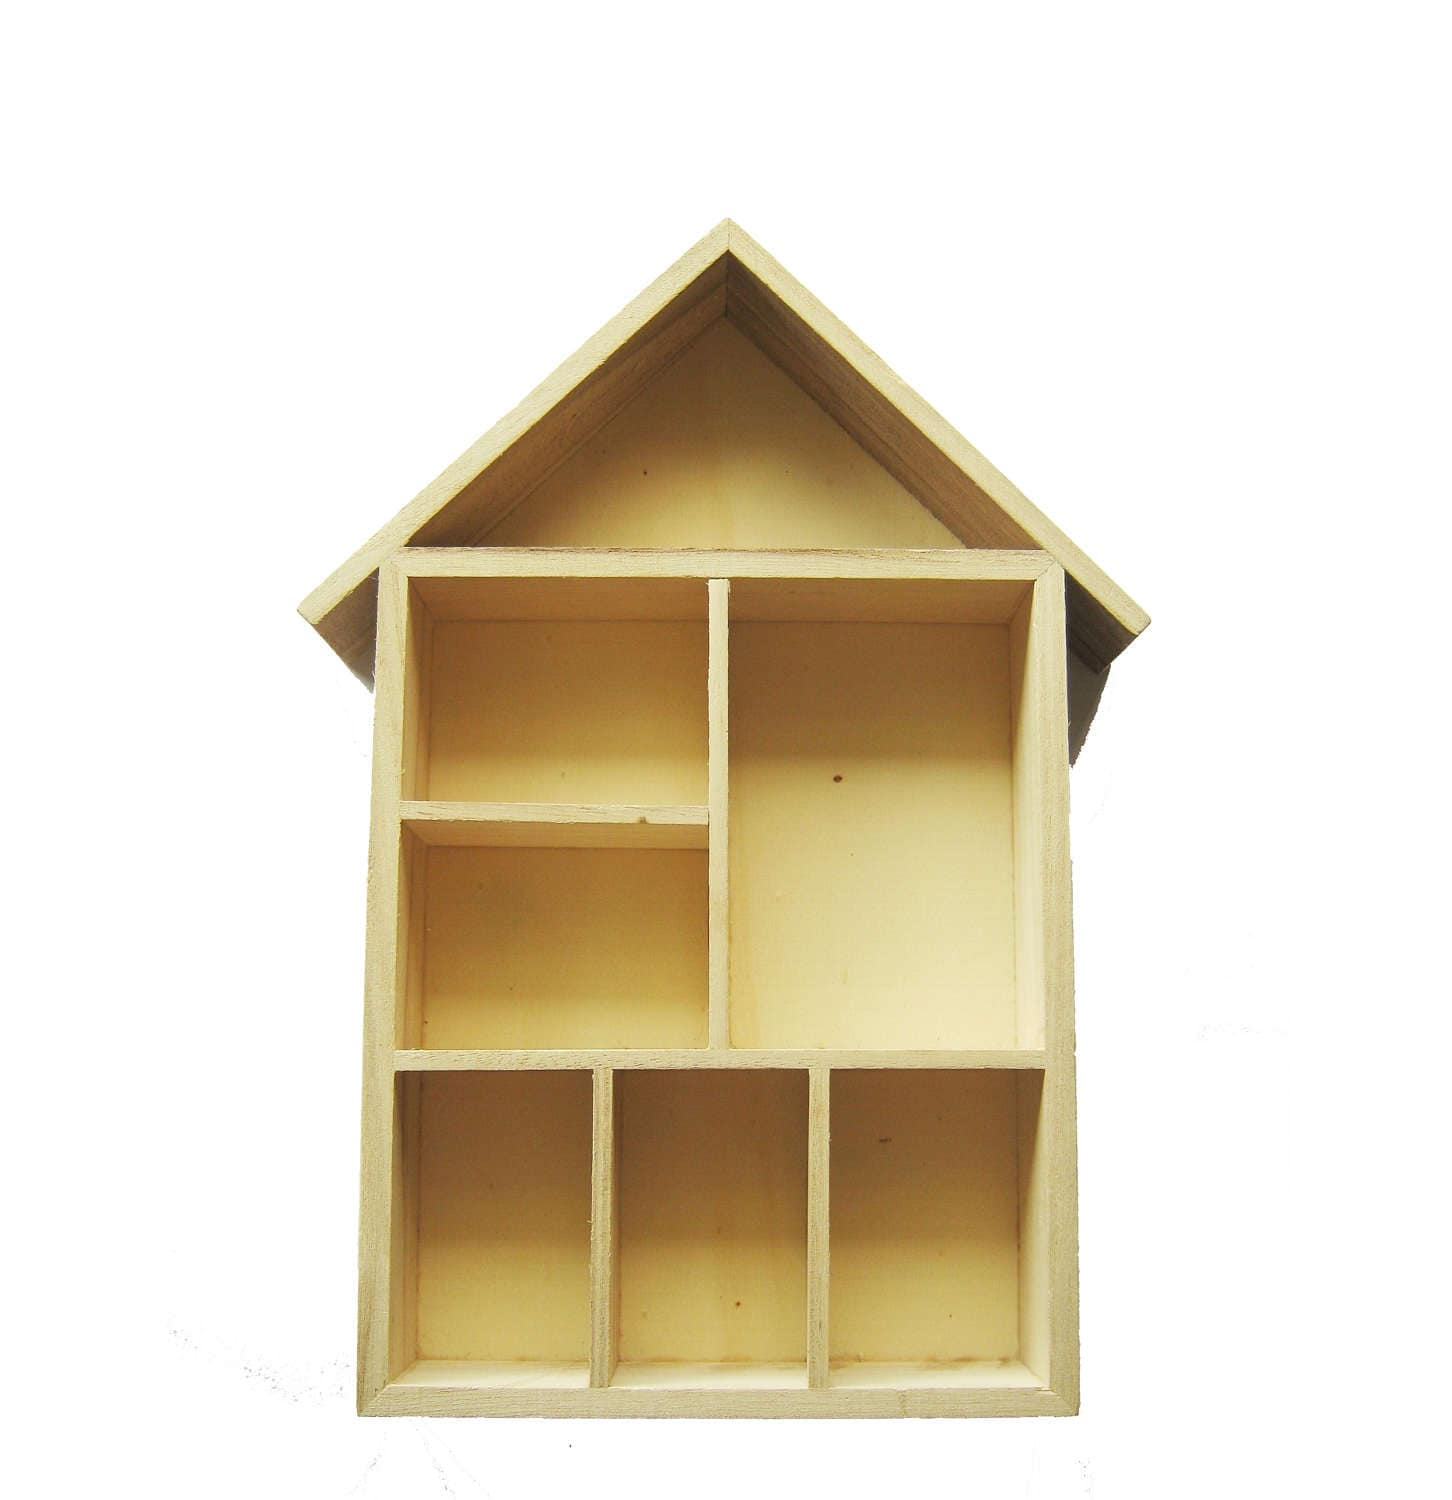 Blank Wooden House Shaped Shelving Box Ready to Decorate Mixed Media ...